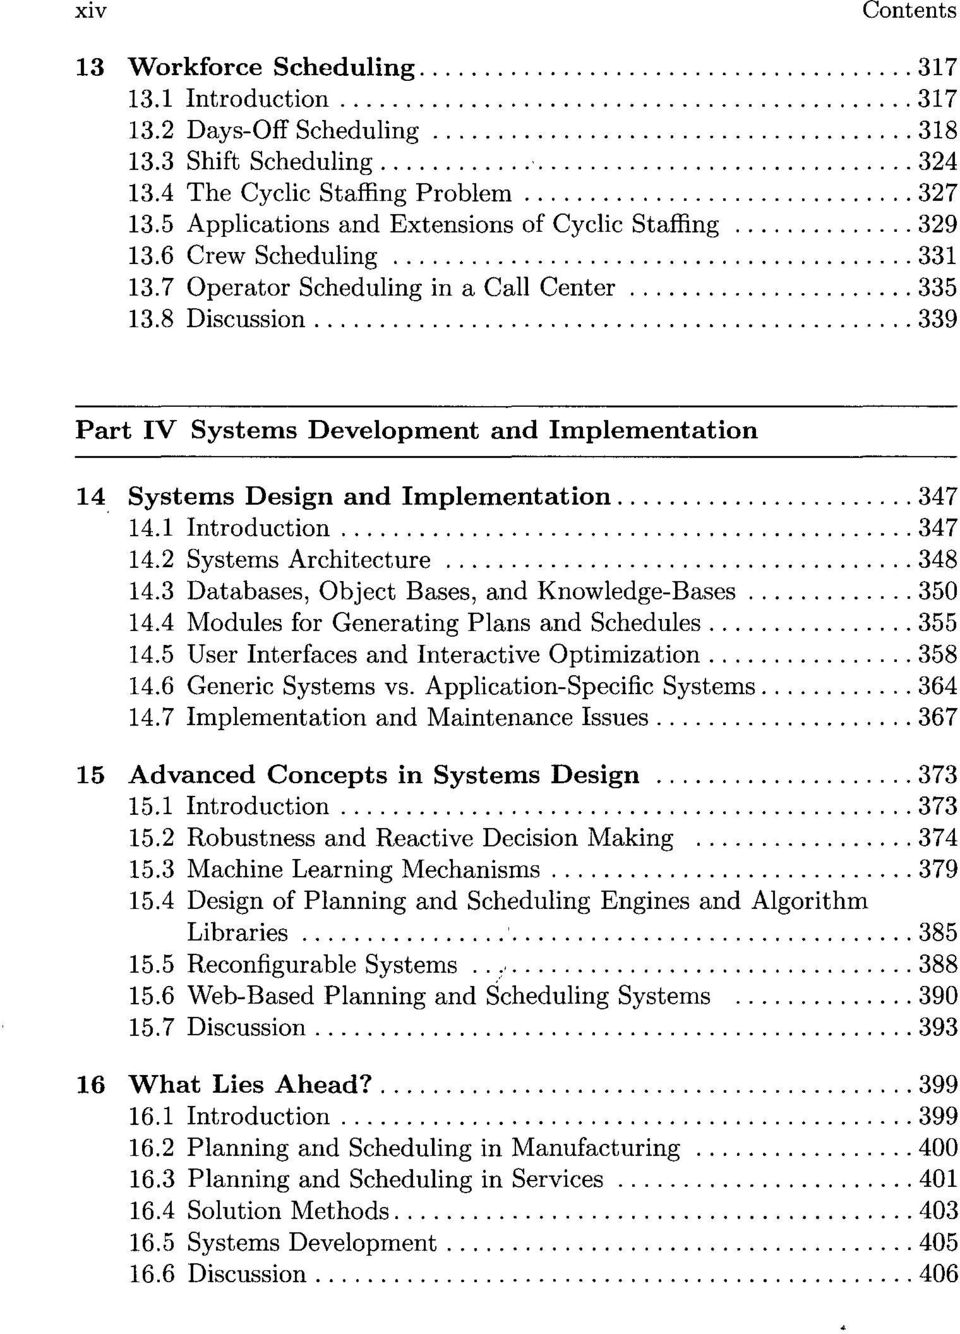 8 Discussion 339 Part IV Systems Development and Implementation 14 Systems Design and Implementation 347 14.1 Introduction 347 14.2 Systems Architecture 348 14.